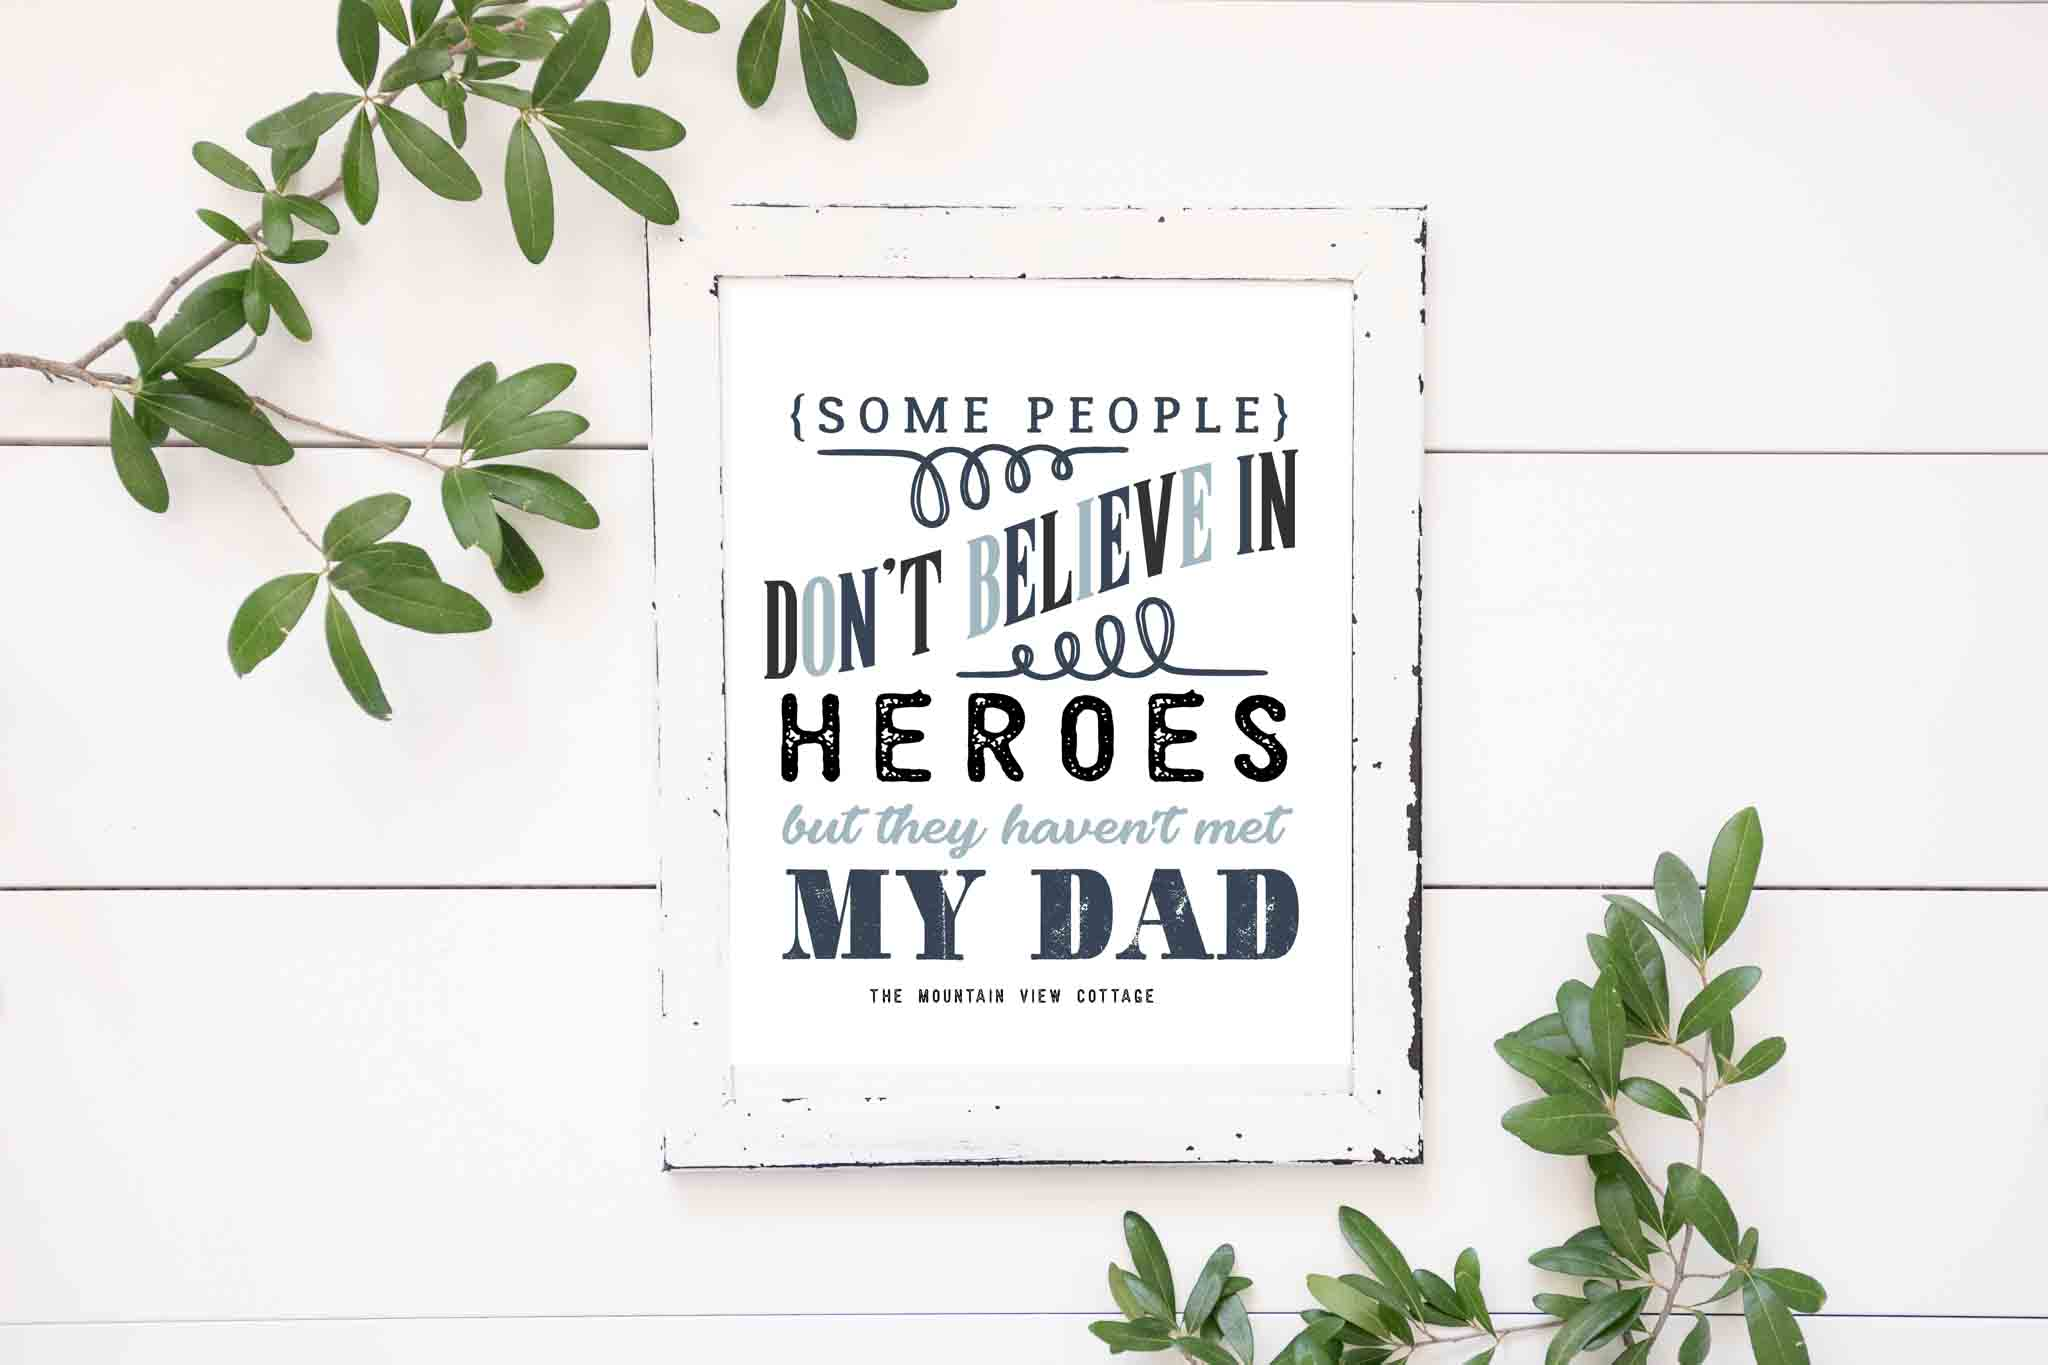 Dad quotes-dad quotes from daughter-dad quotes from son-dad inpiring quotes-heroes